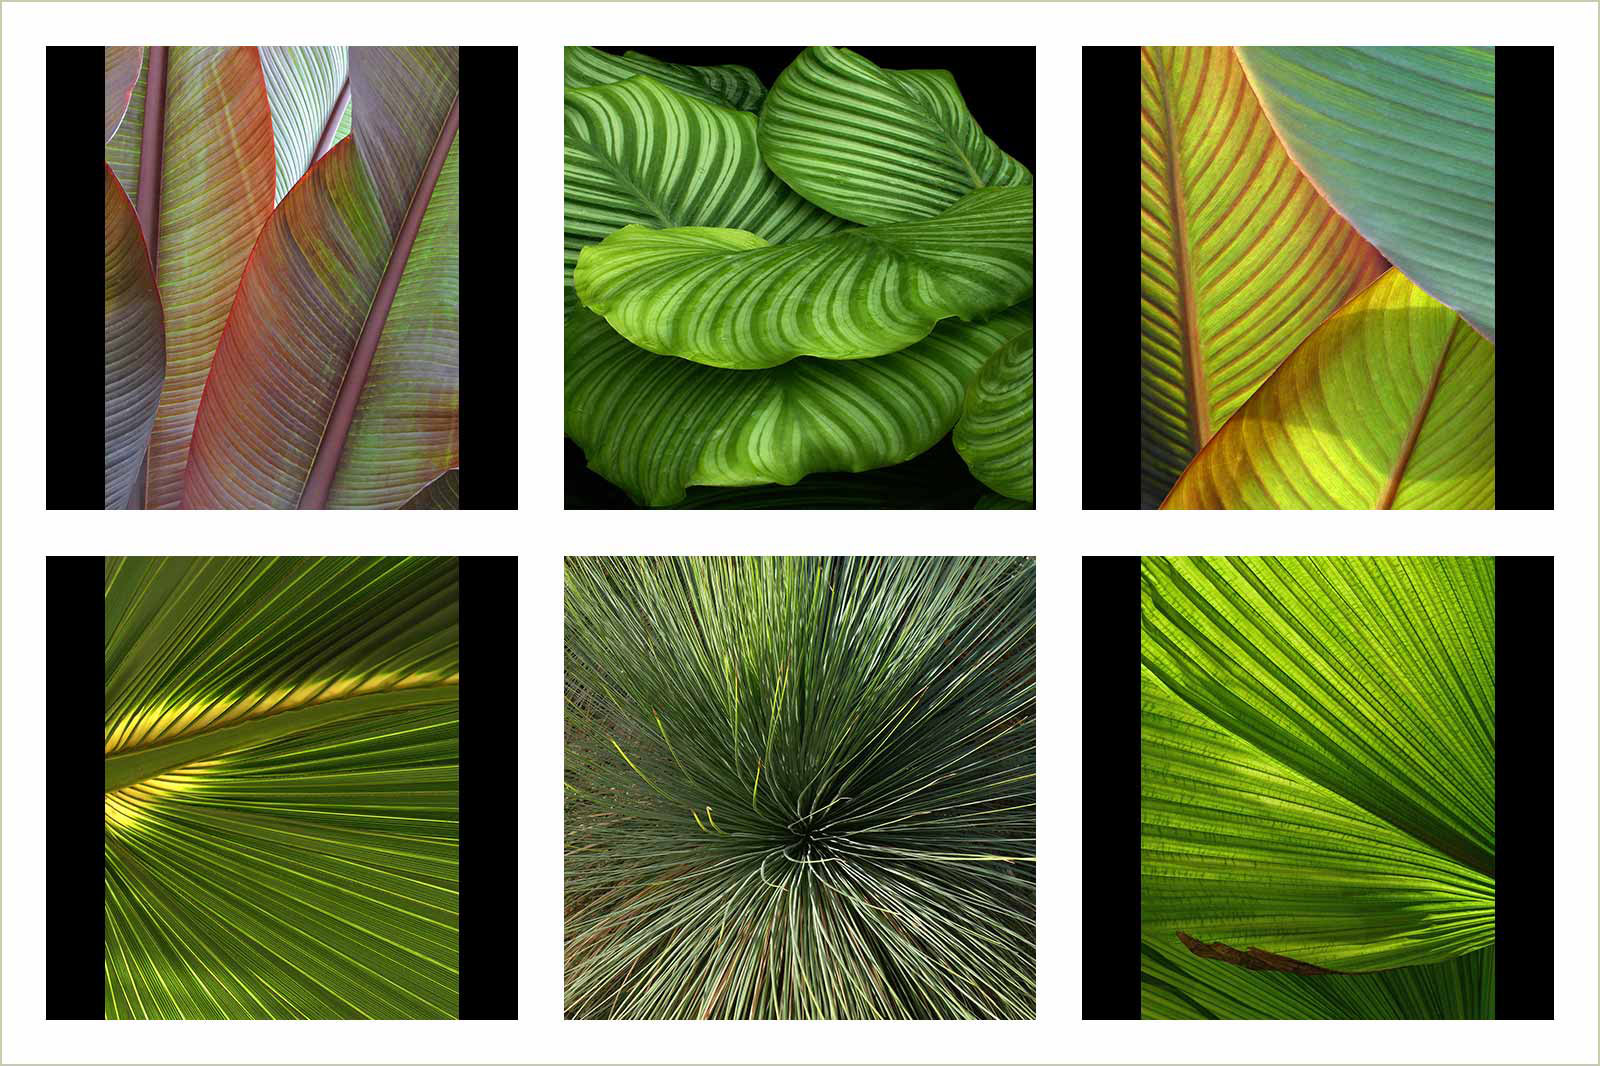 Abstract Images RHS Garden Wisley, © Nigel Chapman, Gold Portfolio Category, RHS Photographic Competition